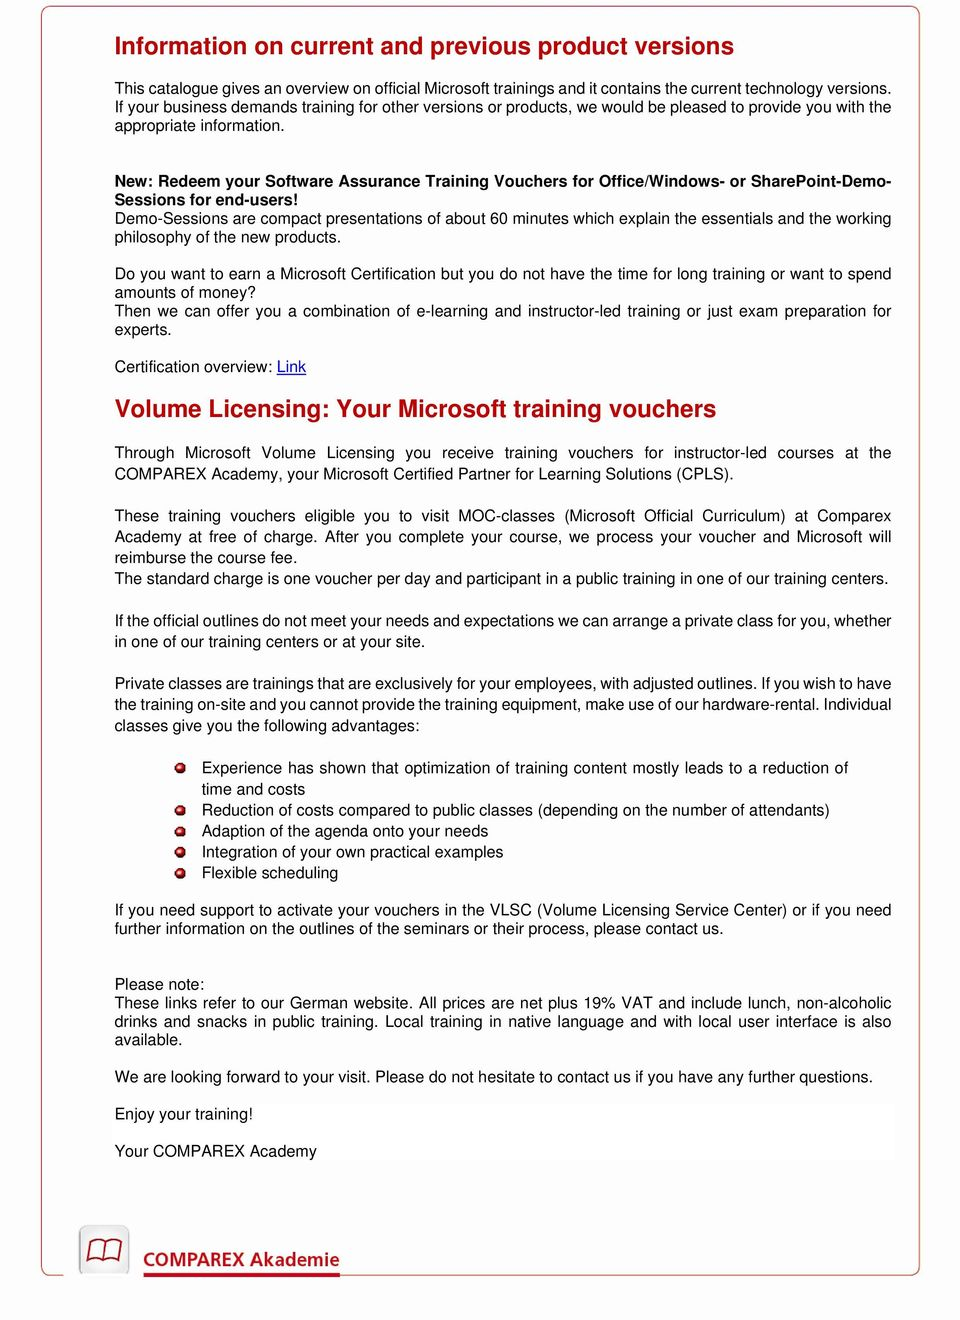 New: Redeem your Software Assurance Training Vouchers for Office/Windows- or SharePoint-Demo- Sessions for end-users!